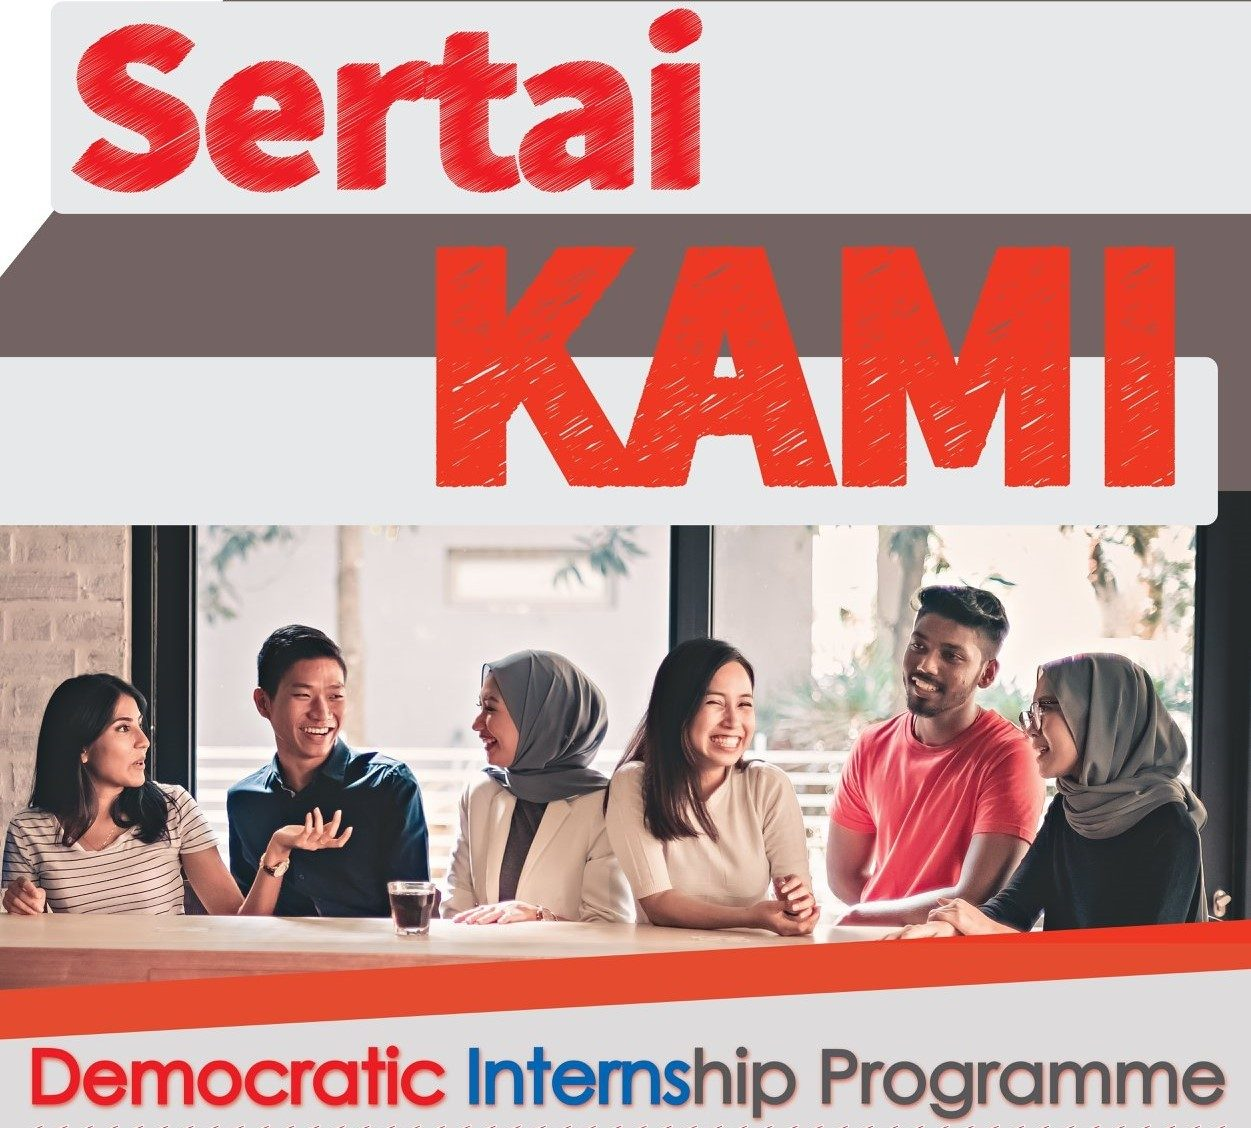 Democratic-Internship-Programme.jpg